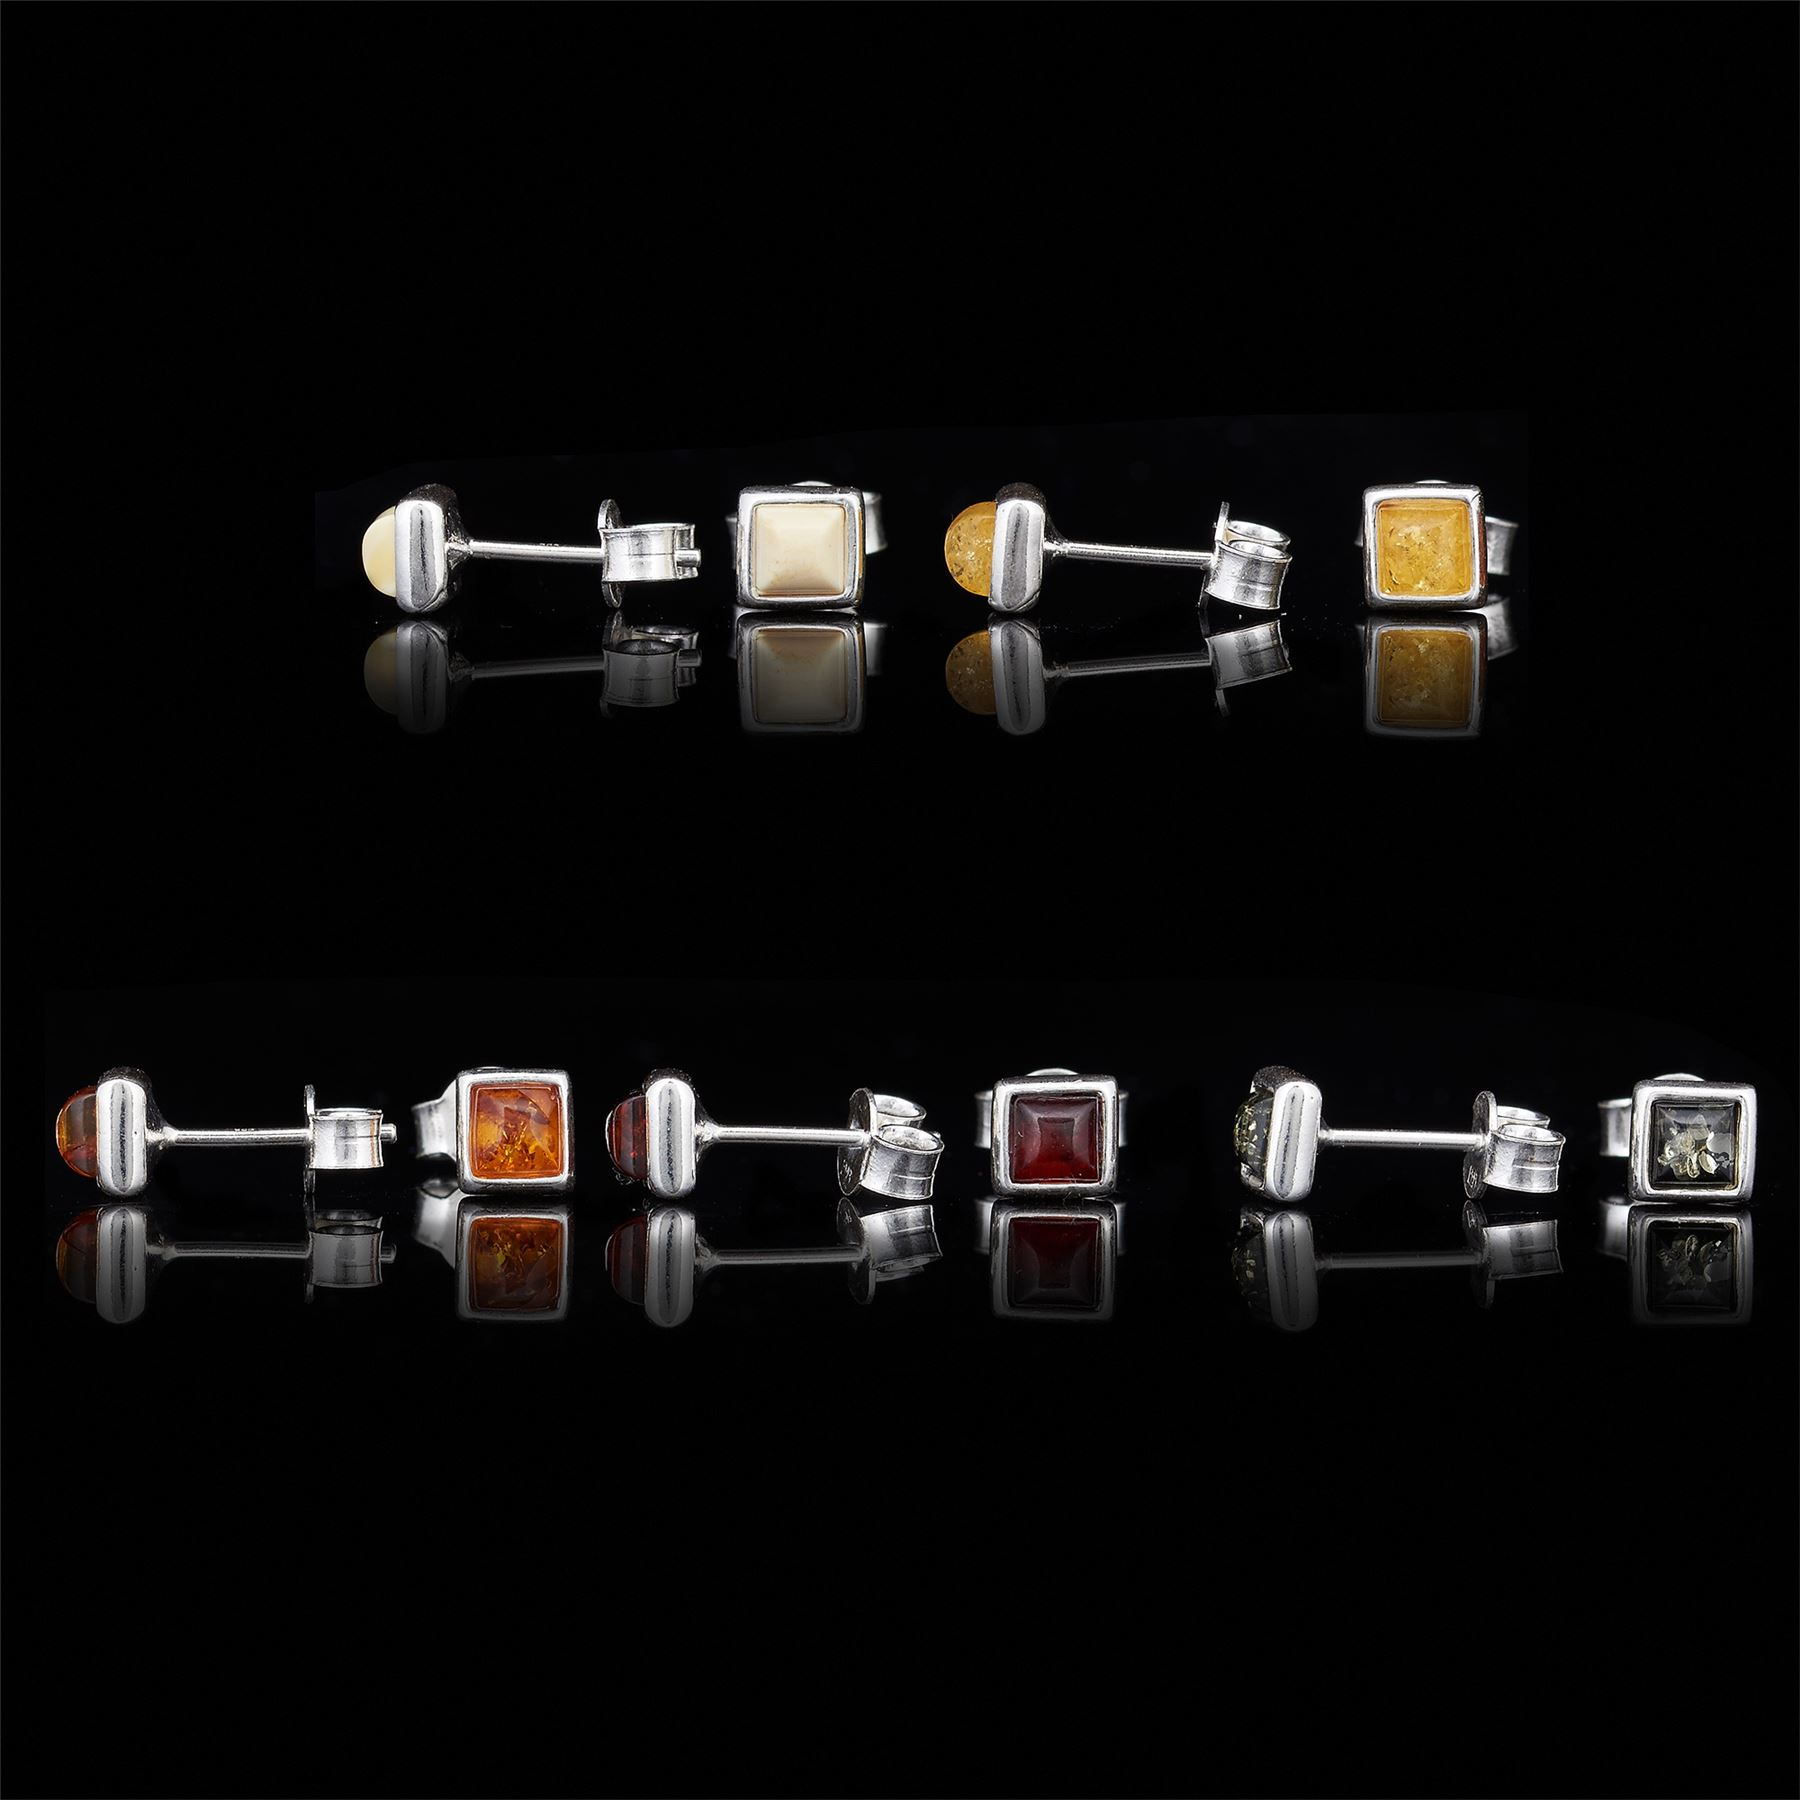 Amberta-Genuine-925-Sterling-Silver-Earrings-with-Natural-Baltic-Amber-Gemstone thumbnail 64